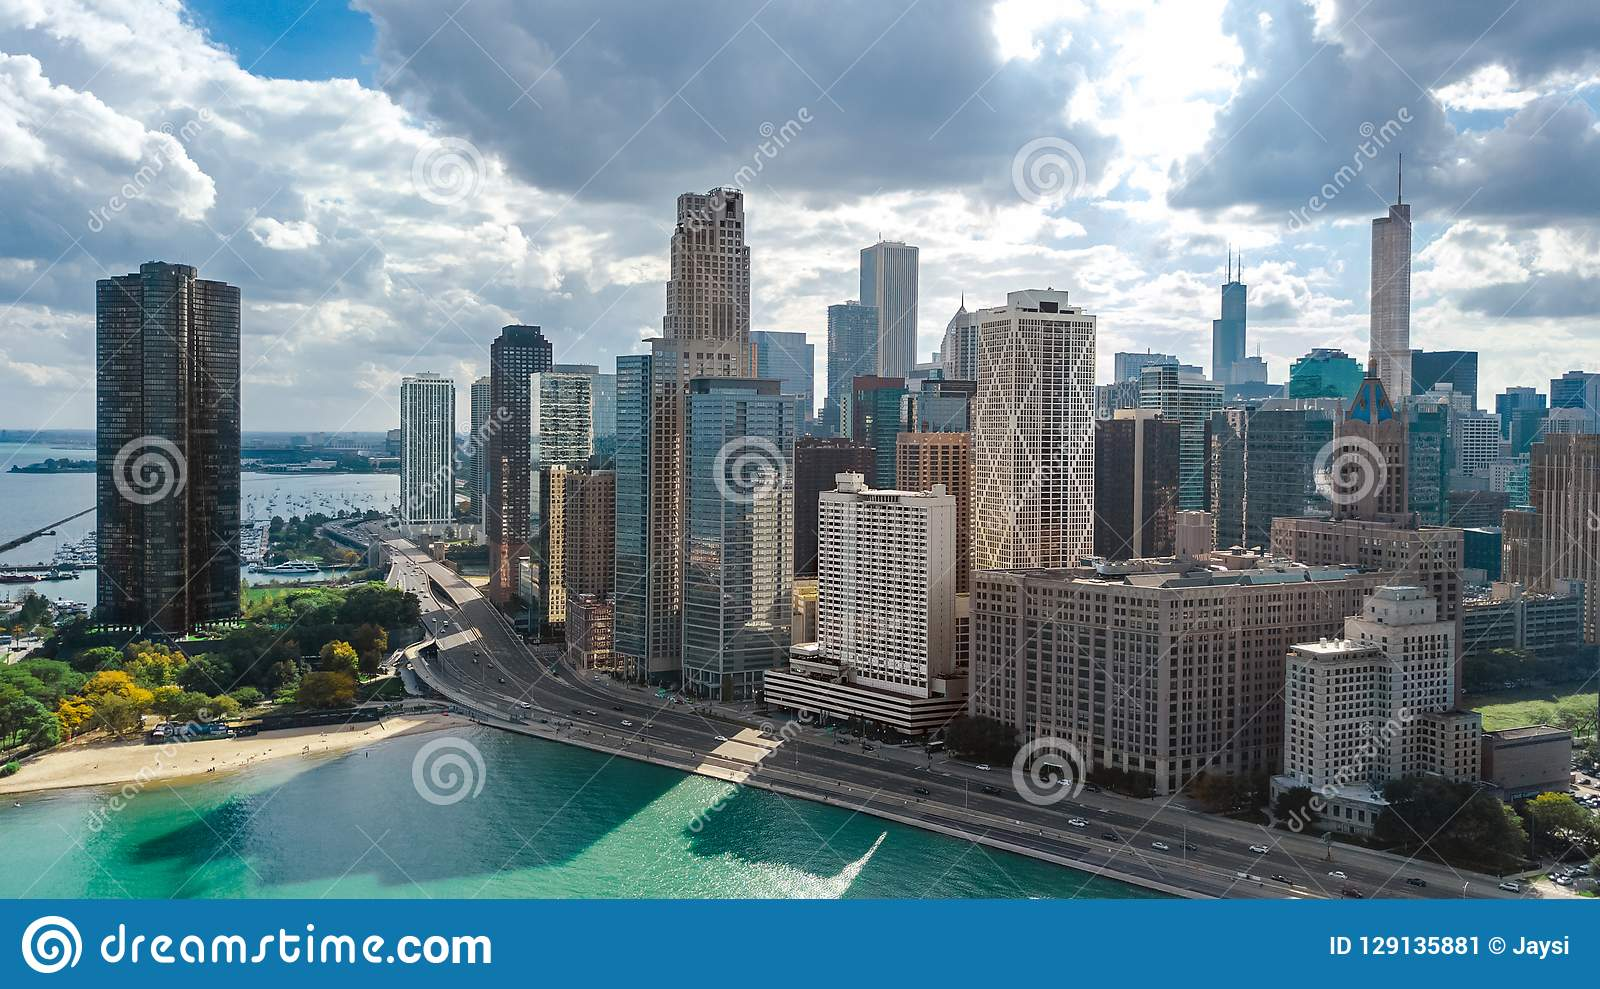 Chicago skyline aerial drone view from above, lake Michigan and Chicago downtown skyscrapers cityscape, Illinois, USA